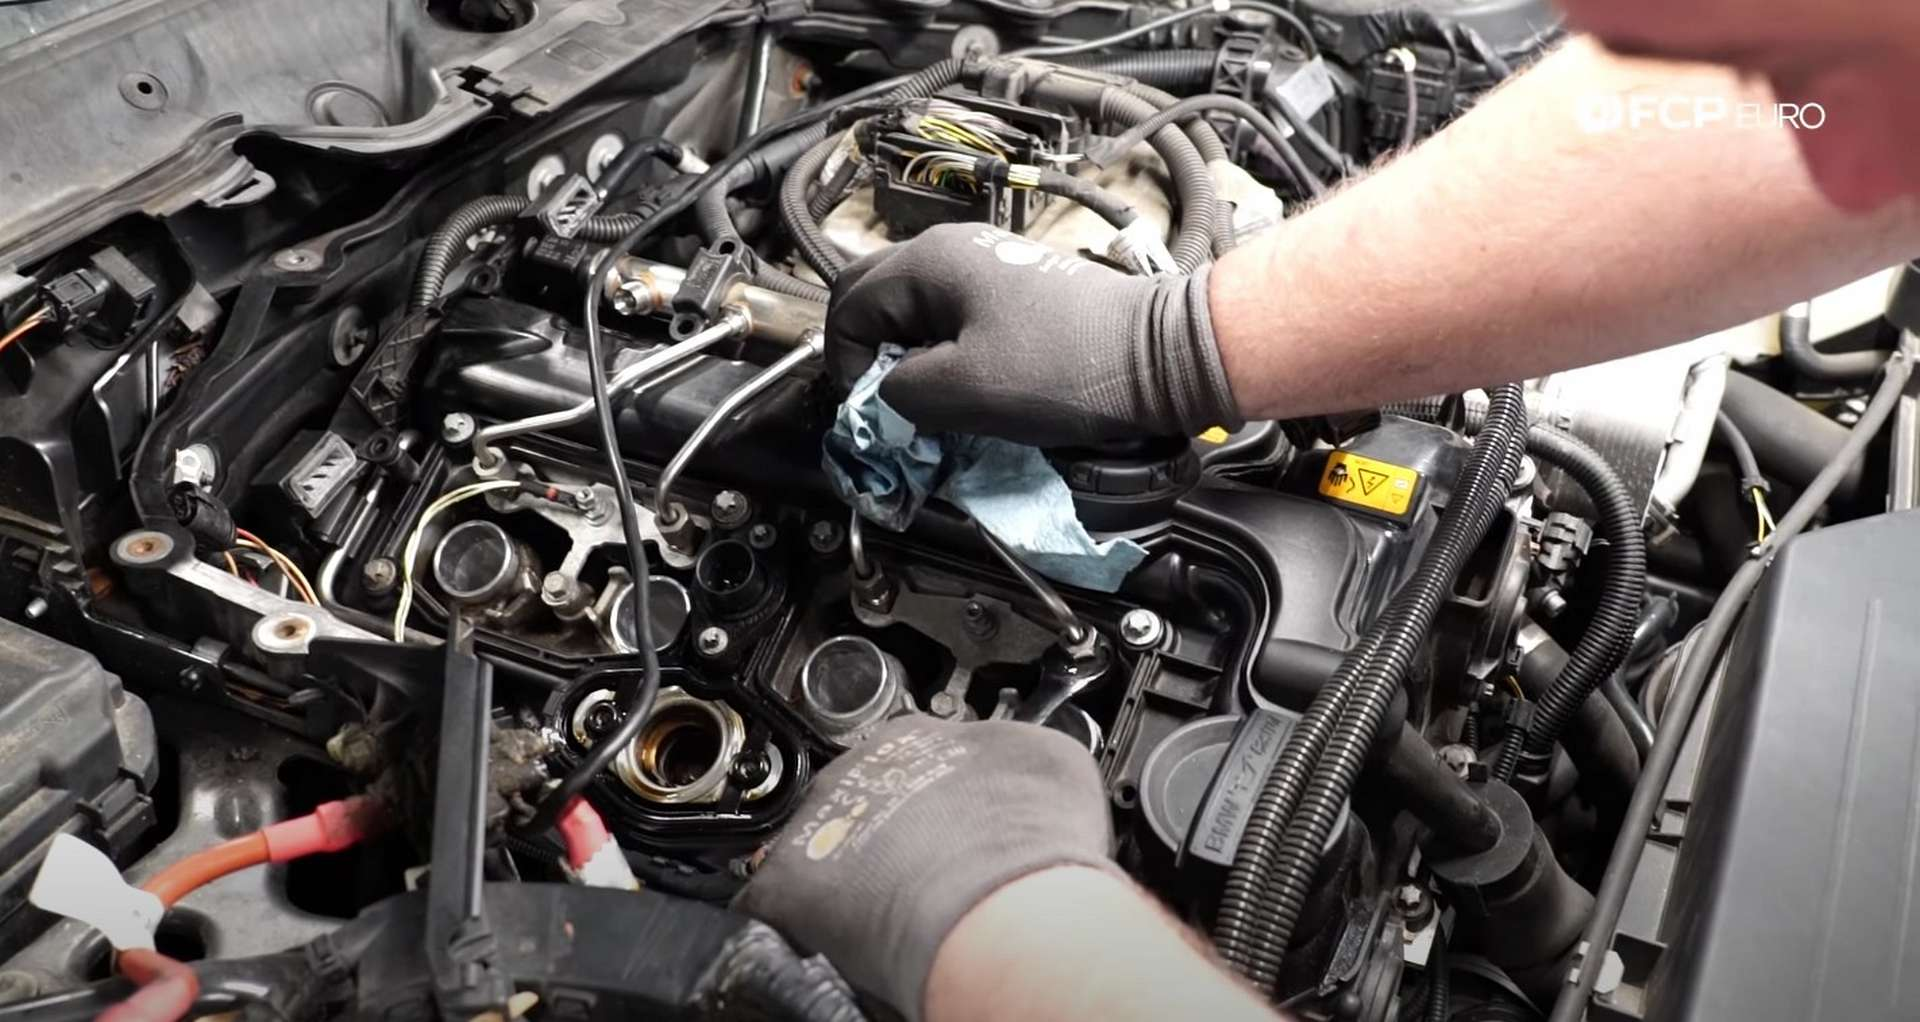 DIY BMW F30 Fuel Injector Replacement high-pressure feed disconnected at both ends